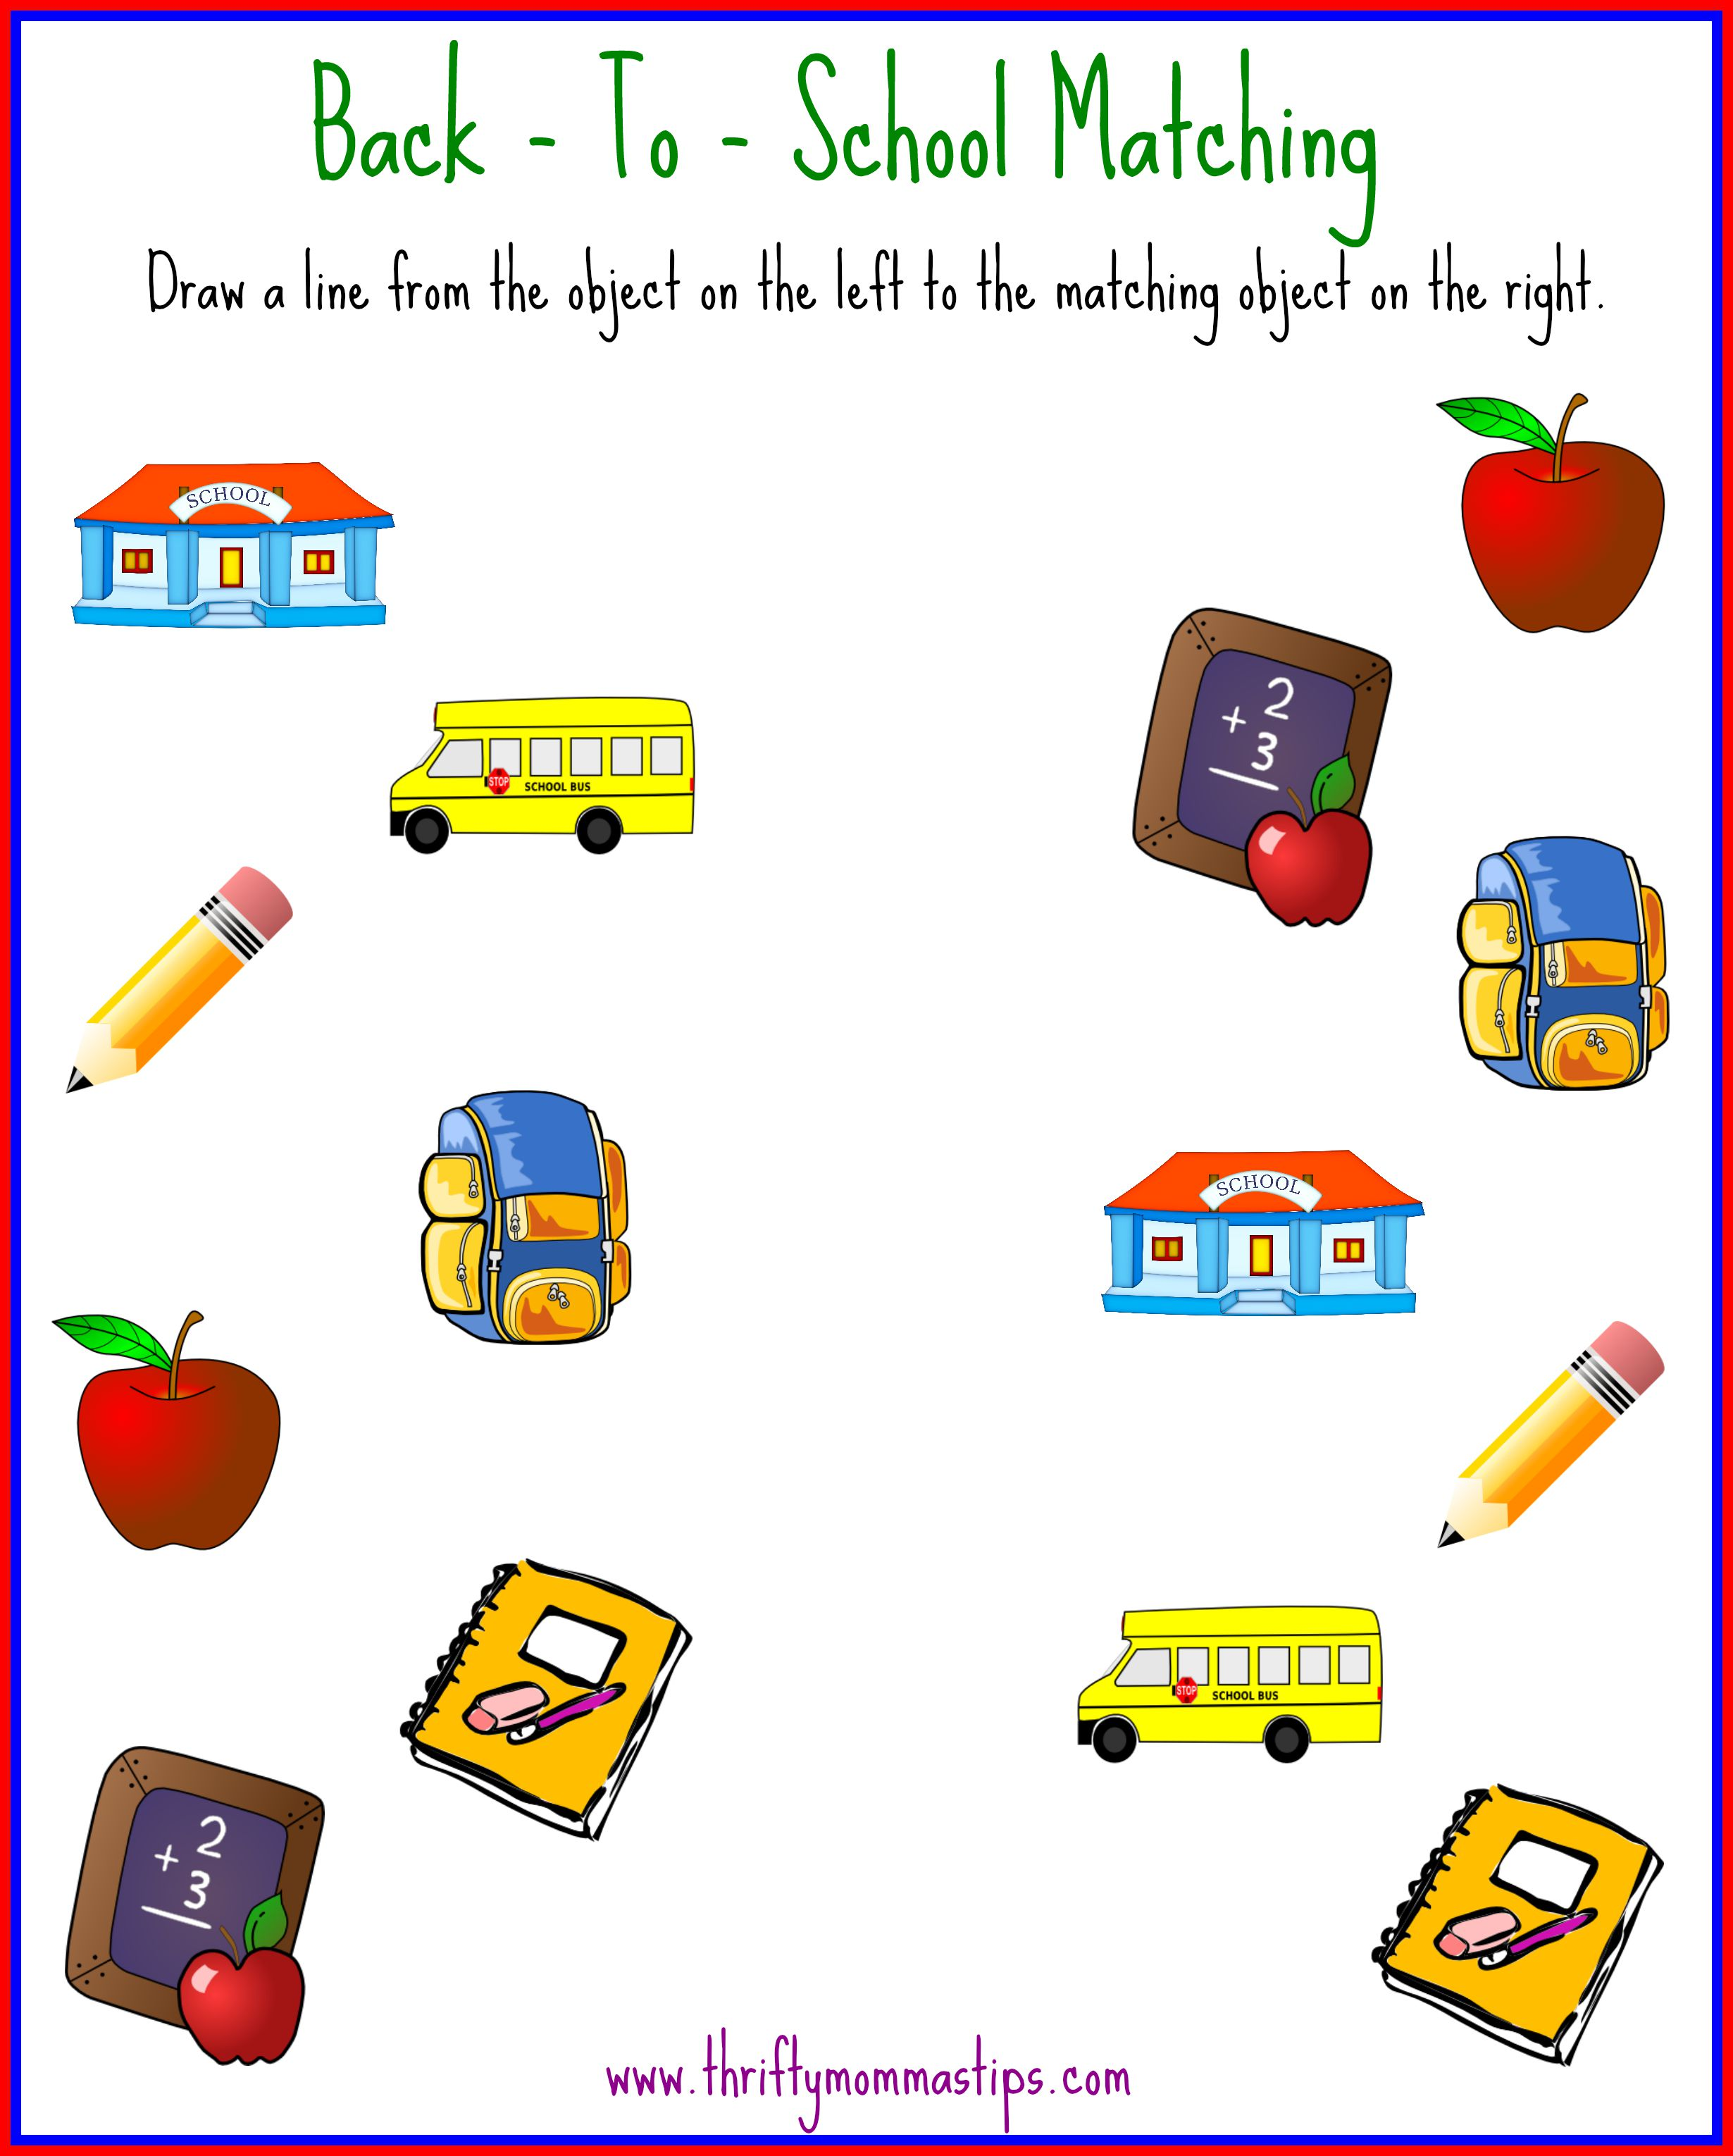 Back To School Matching Printable